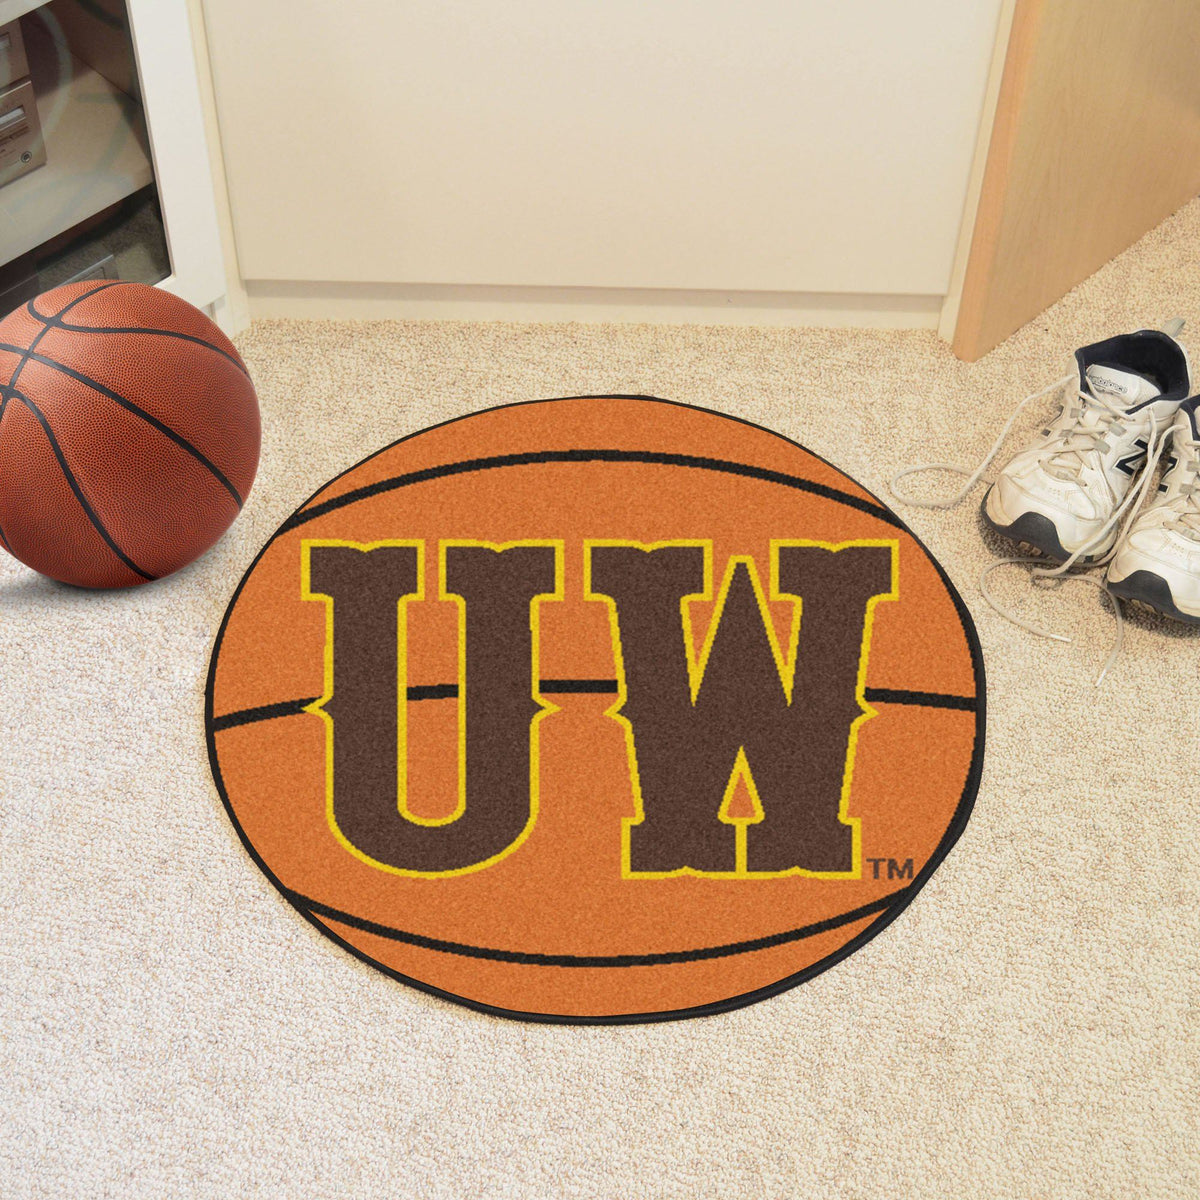 Collegiate - Basketball Mat: T - Z Collegiate Mats, Rectangular Mats, Basketball Mat, Collegiate, Home Fan Mats Wyoming 2